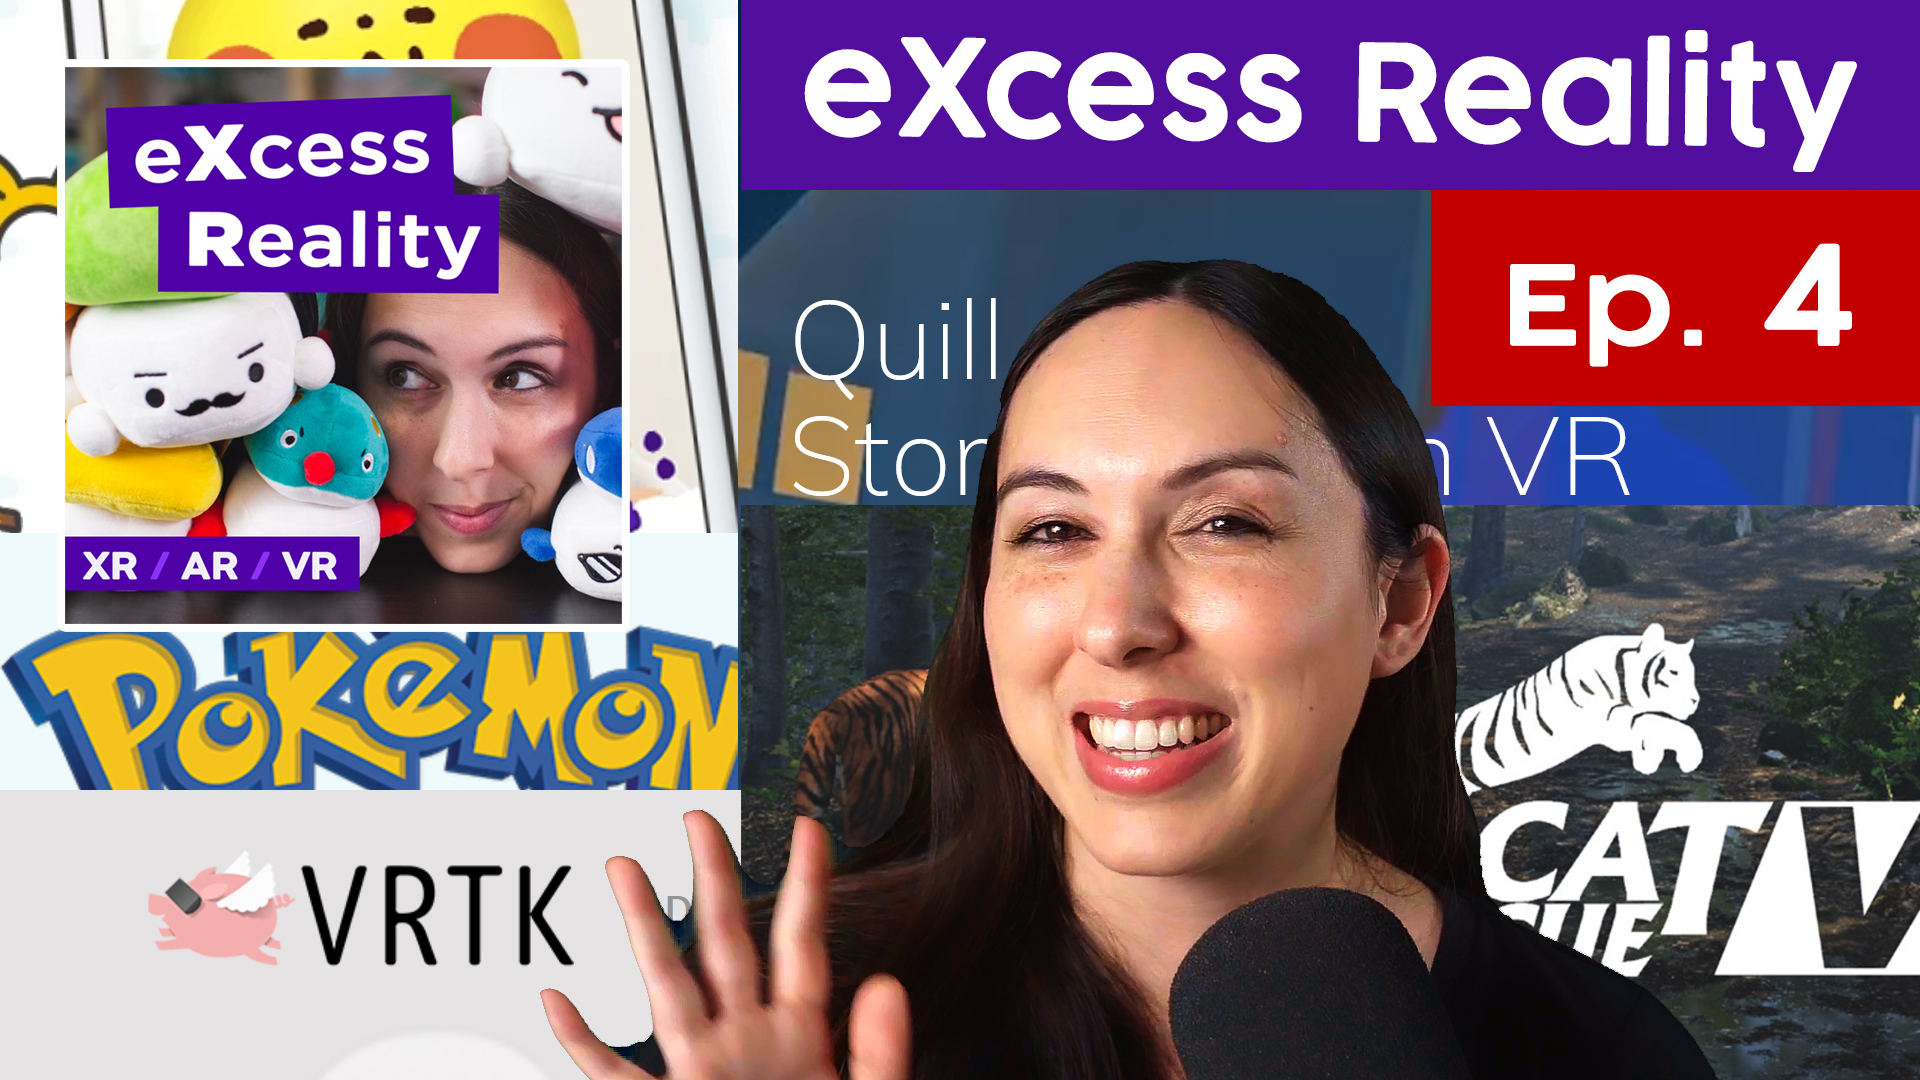 eXcess Reality Podcast